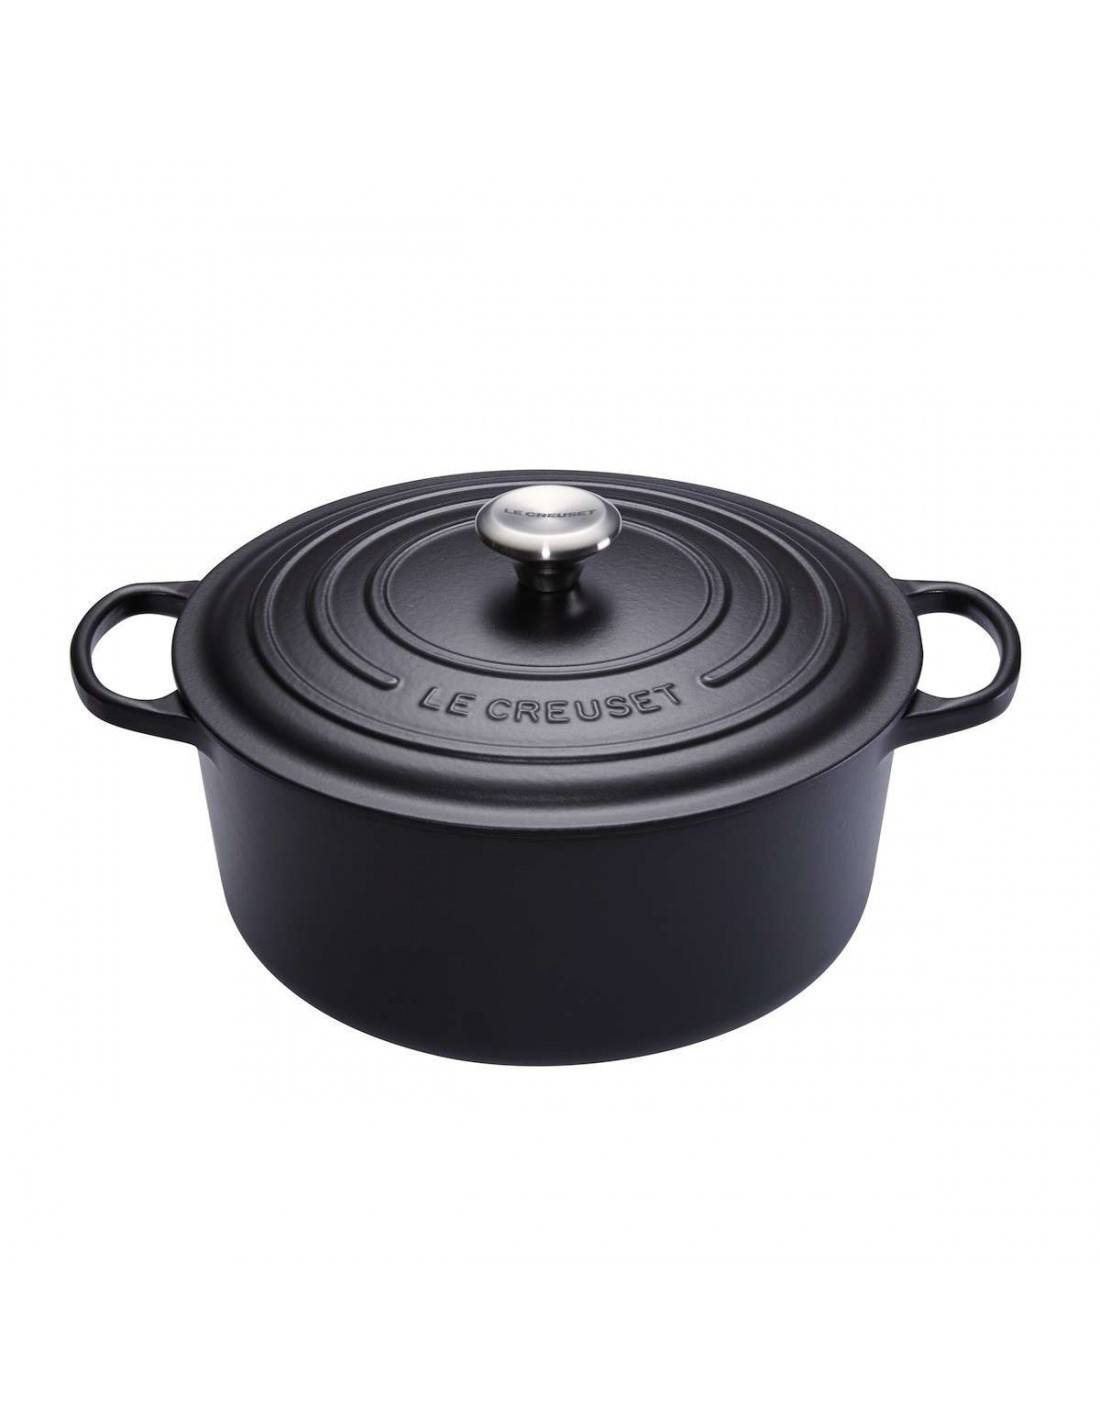 le creuset cocotte cast iron round casserole 24cm. Black Bedroom Furniture Sets. Home Design Ideas